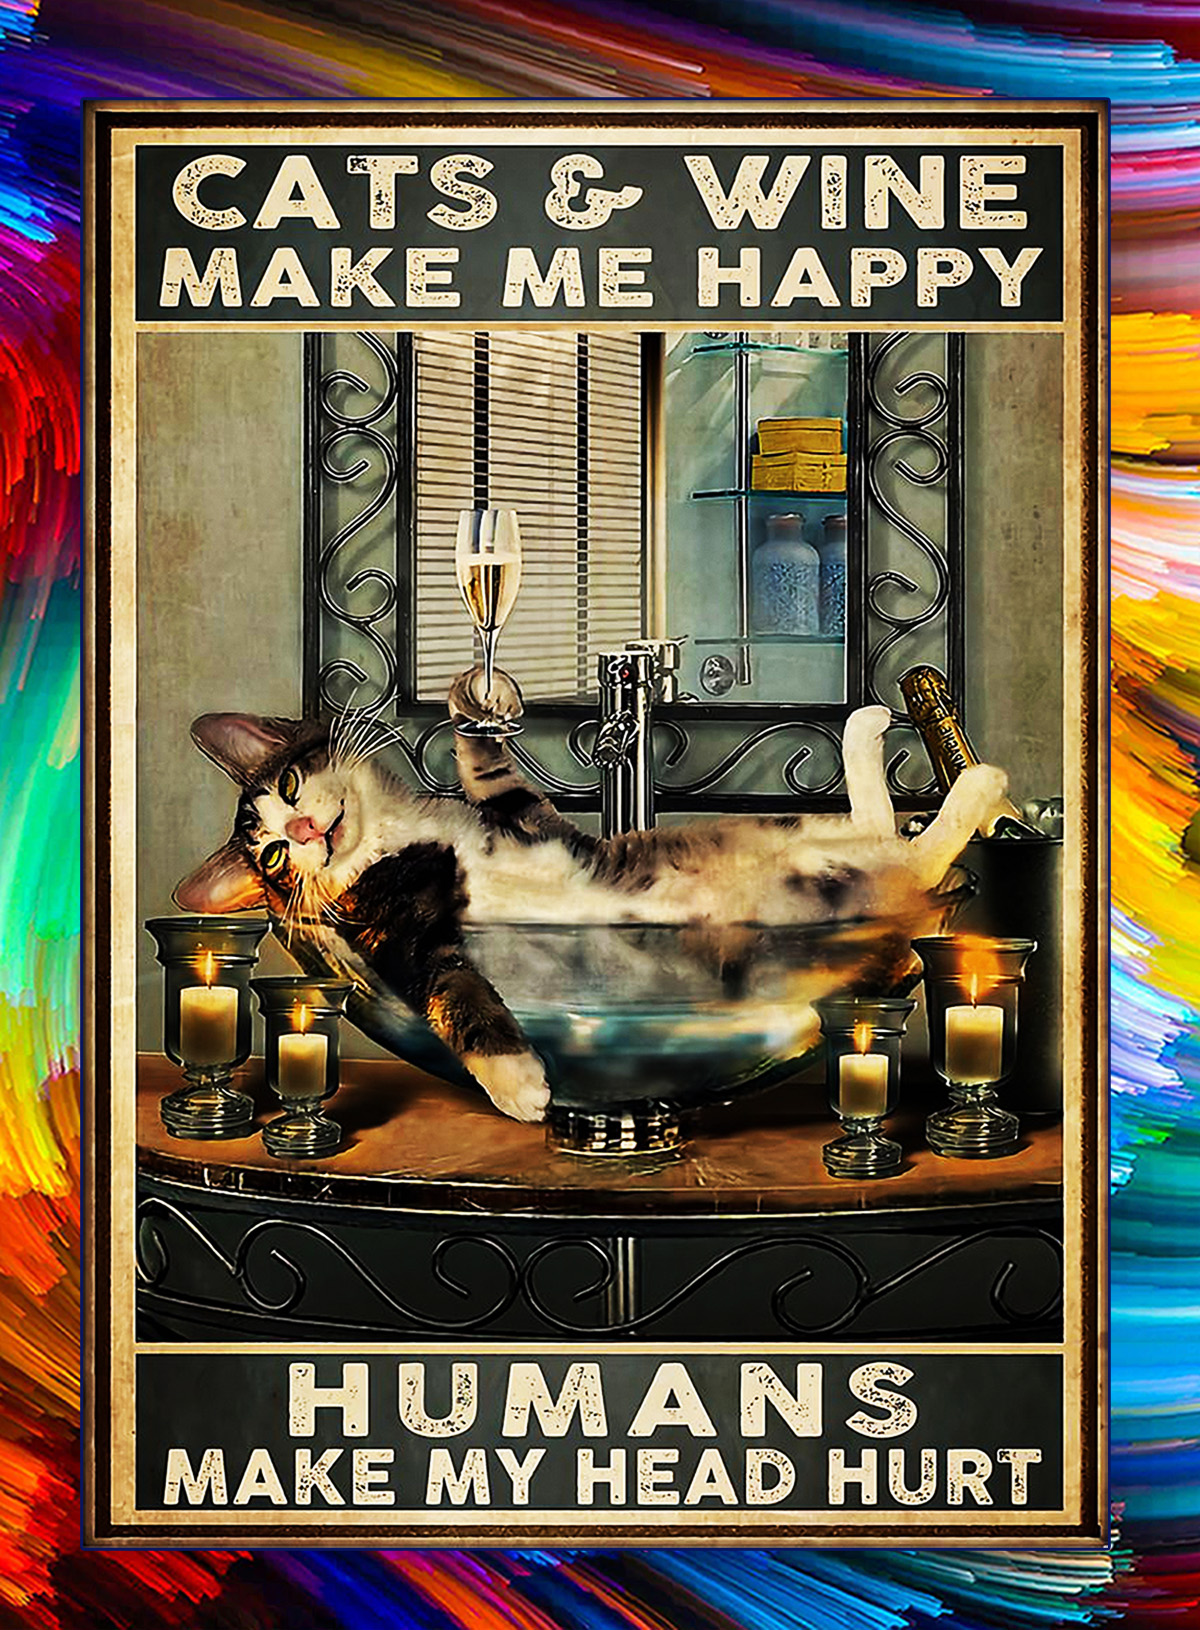 Cats and wine make me happy humans make my head hurt poster - A1